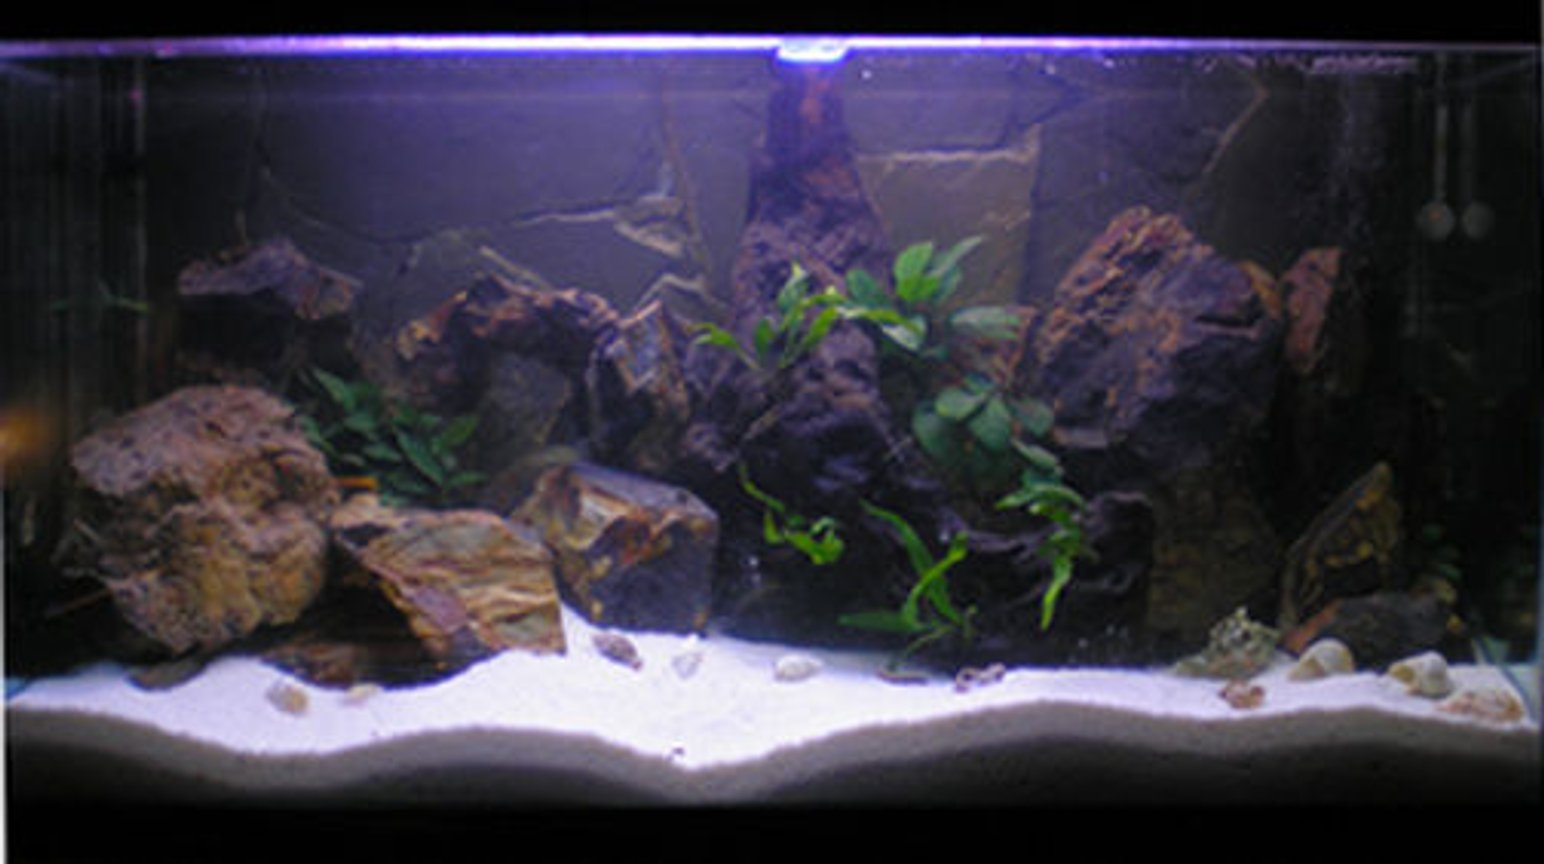 188 gallons planted tank (mostly live plants and fish) - Dimension 100x50x40 Light: 1 x Silvania Gro lux od 45cm 1 x Philips AquaRele 60 cm 1 x Arcadia Marine blue 60cm Fishes: 6 x Callochromis melanostigma 3 x Lamprologus speciosus